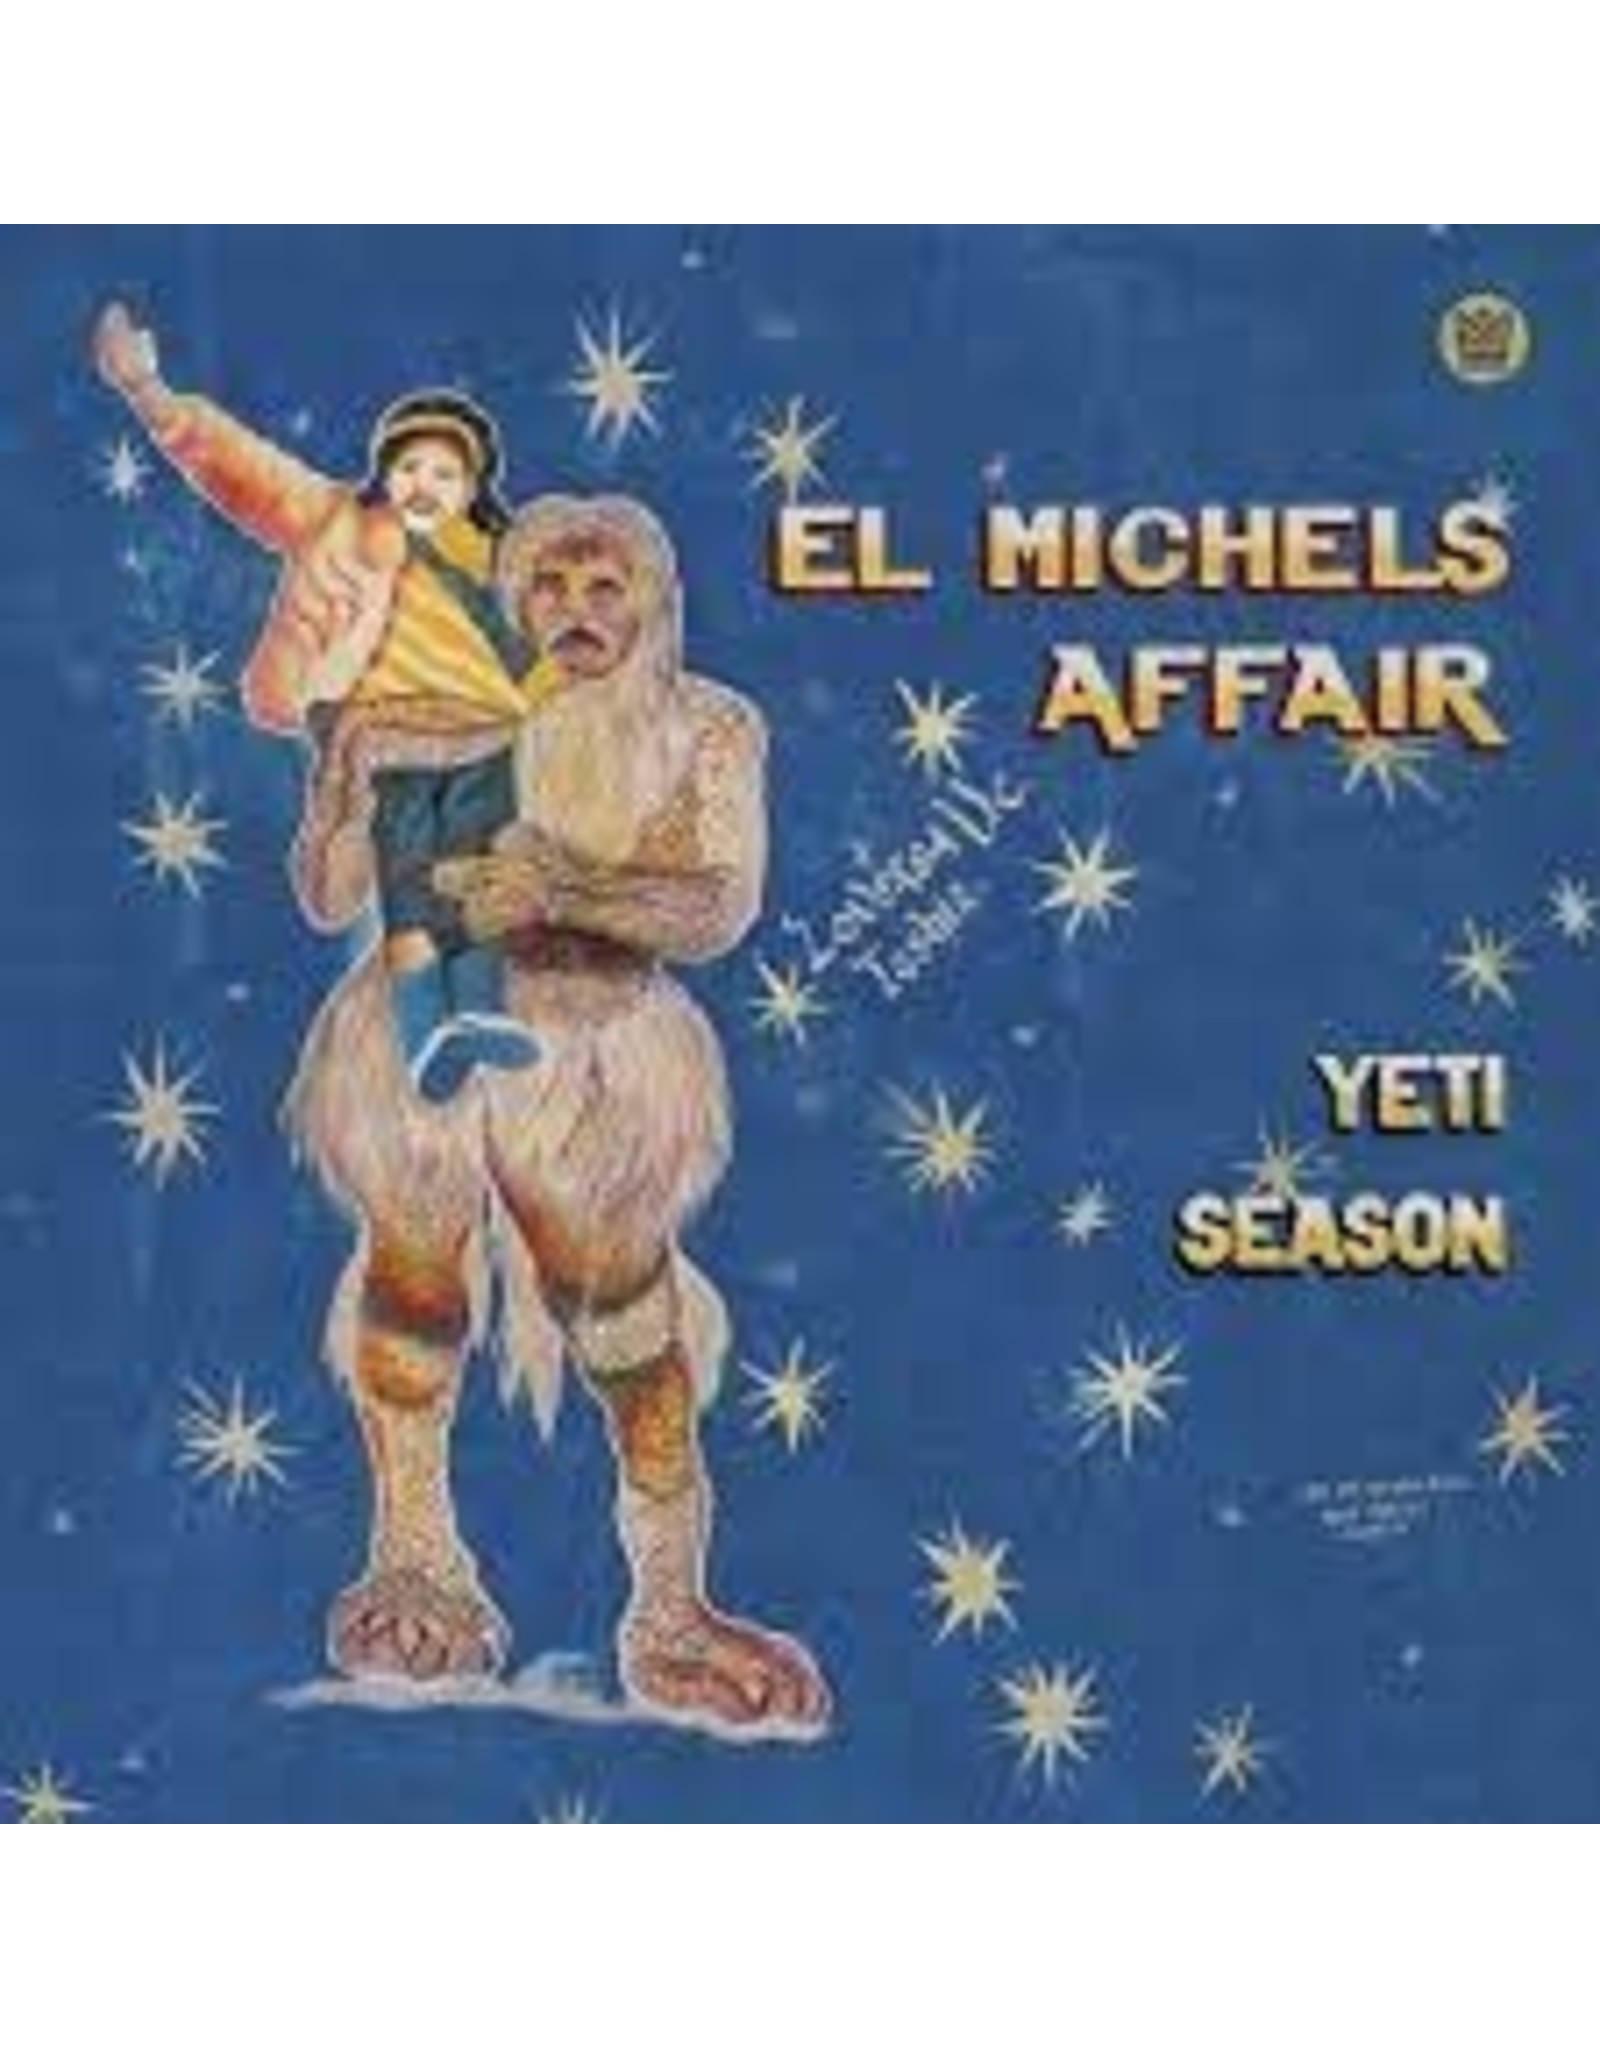 El Michels Affair - Yeti Season LP